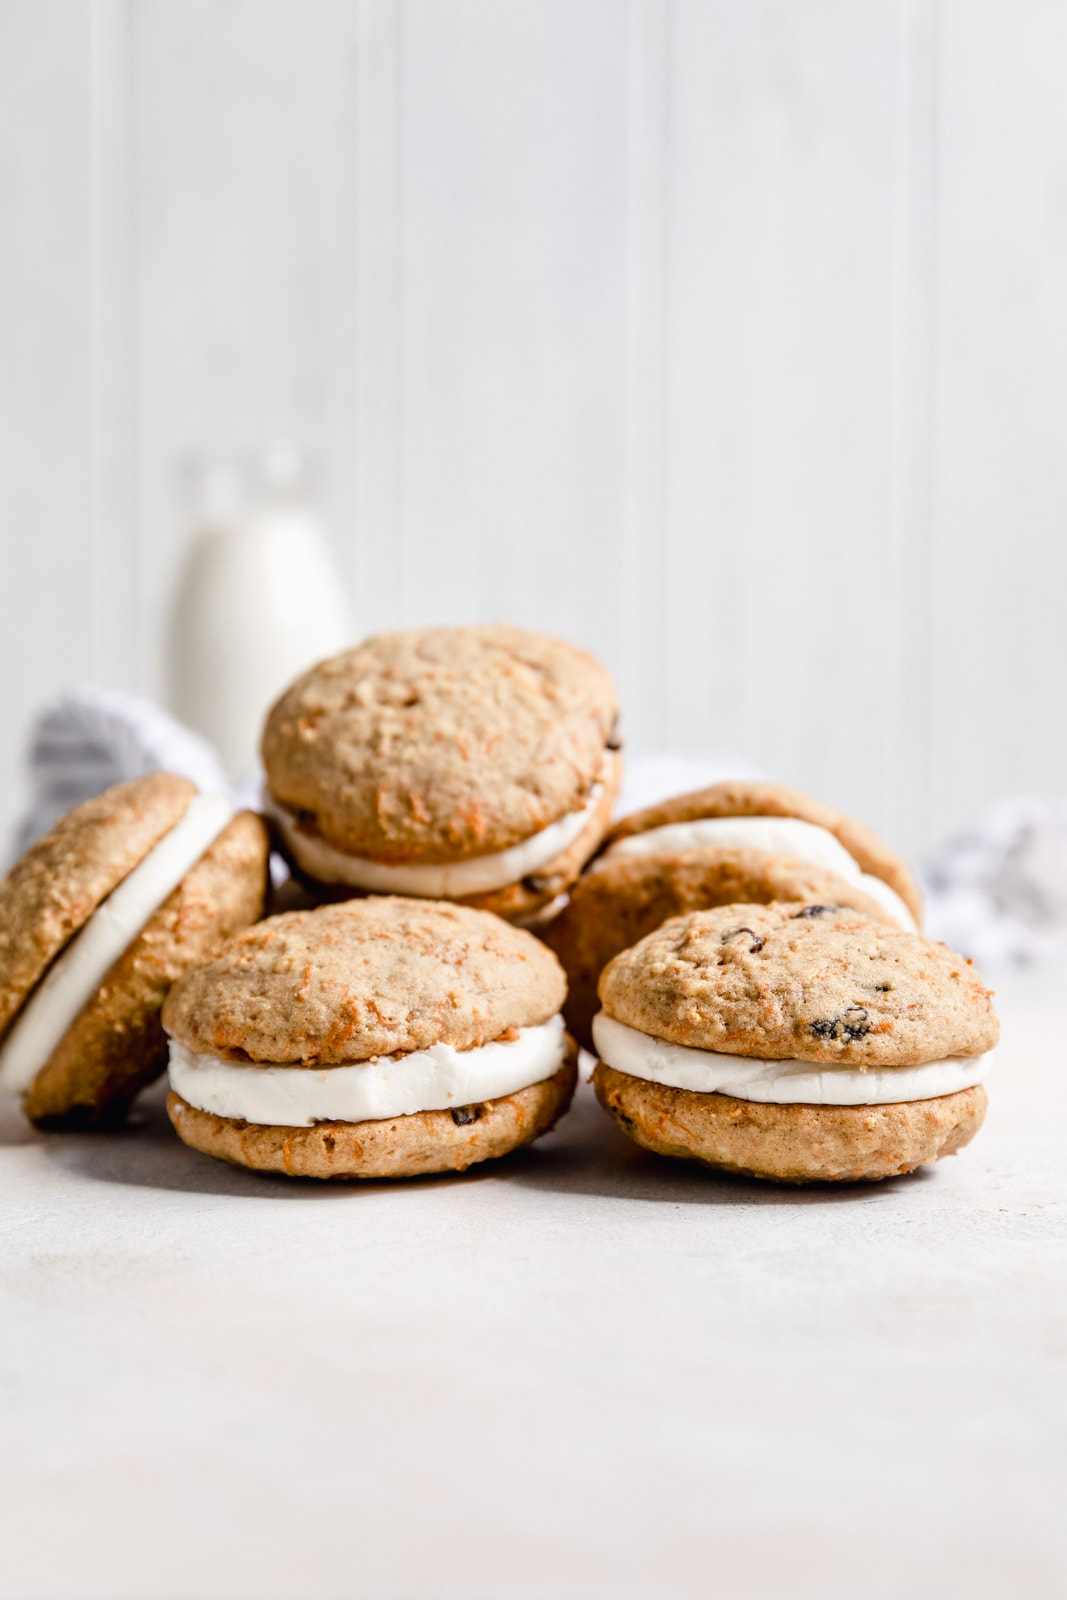 These carrot cake sandwich cookies take all your favorite flavors from classic carrot cake into a transportable sandwich. Perfect for Easter or any time!